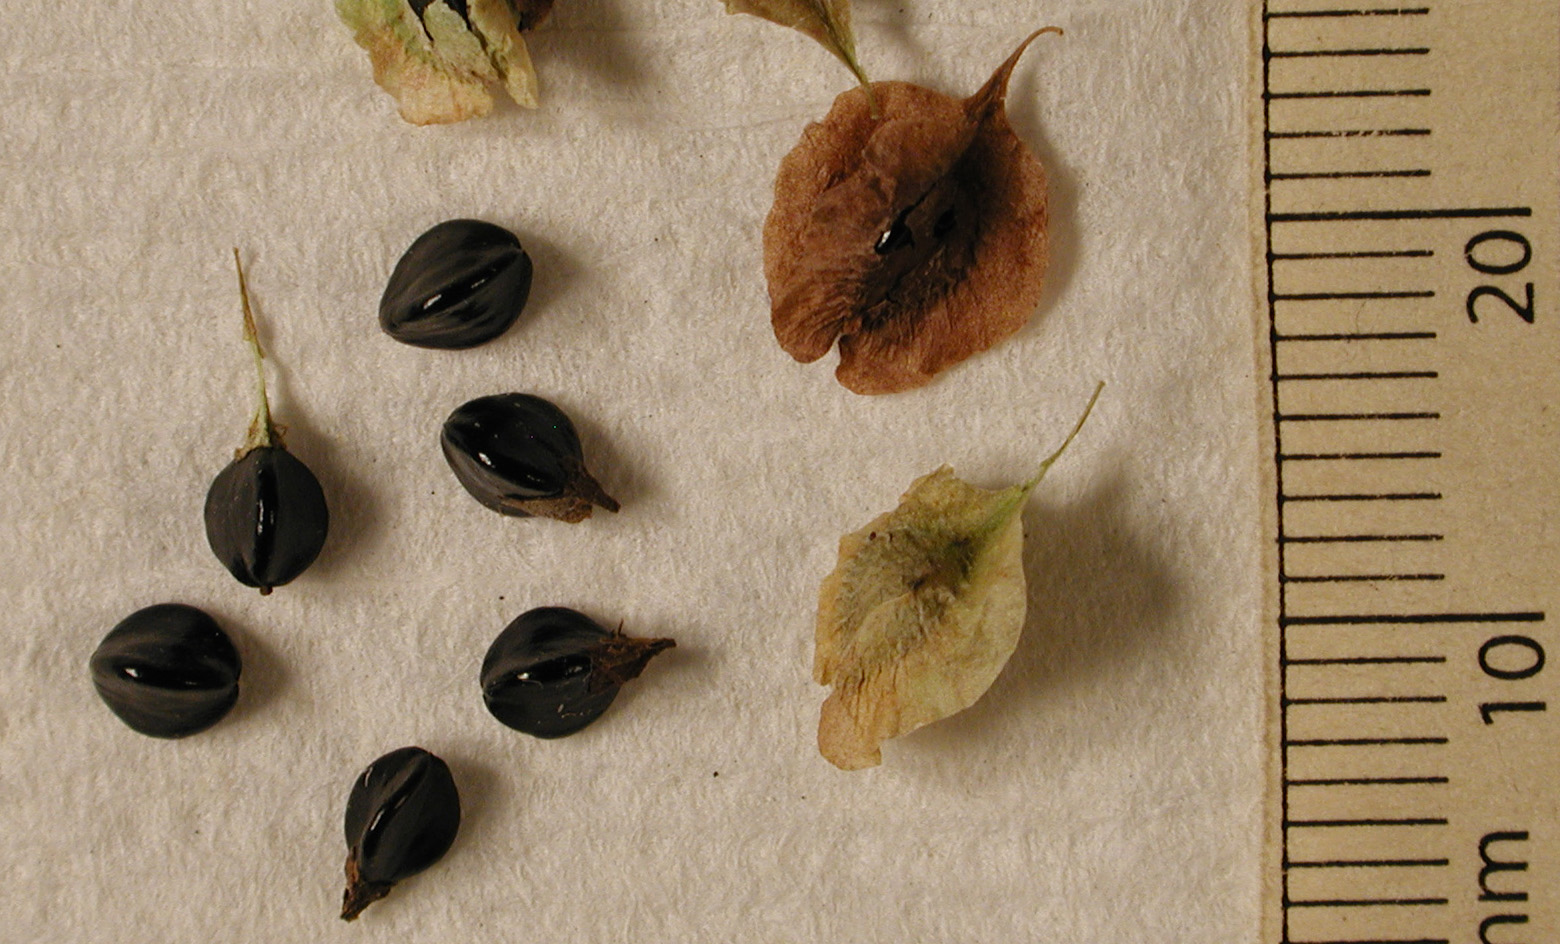 POLY Fall scan seeds